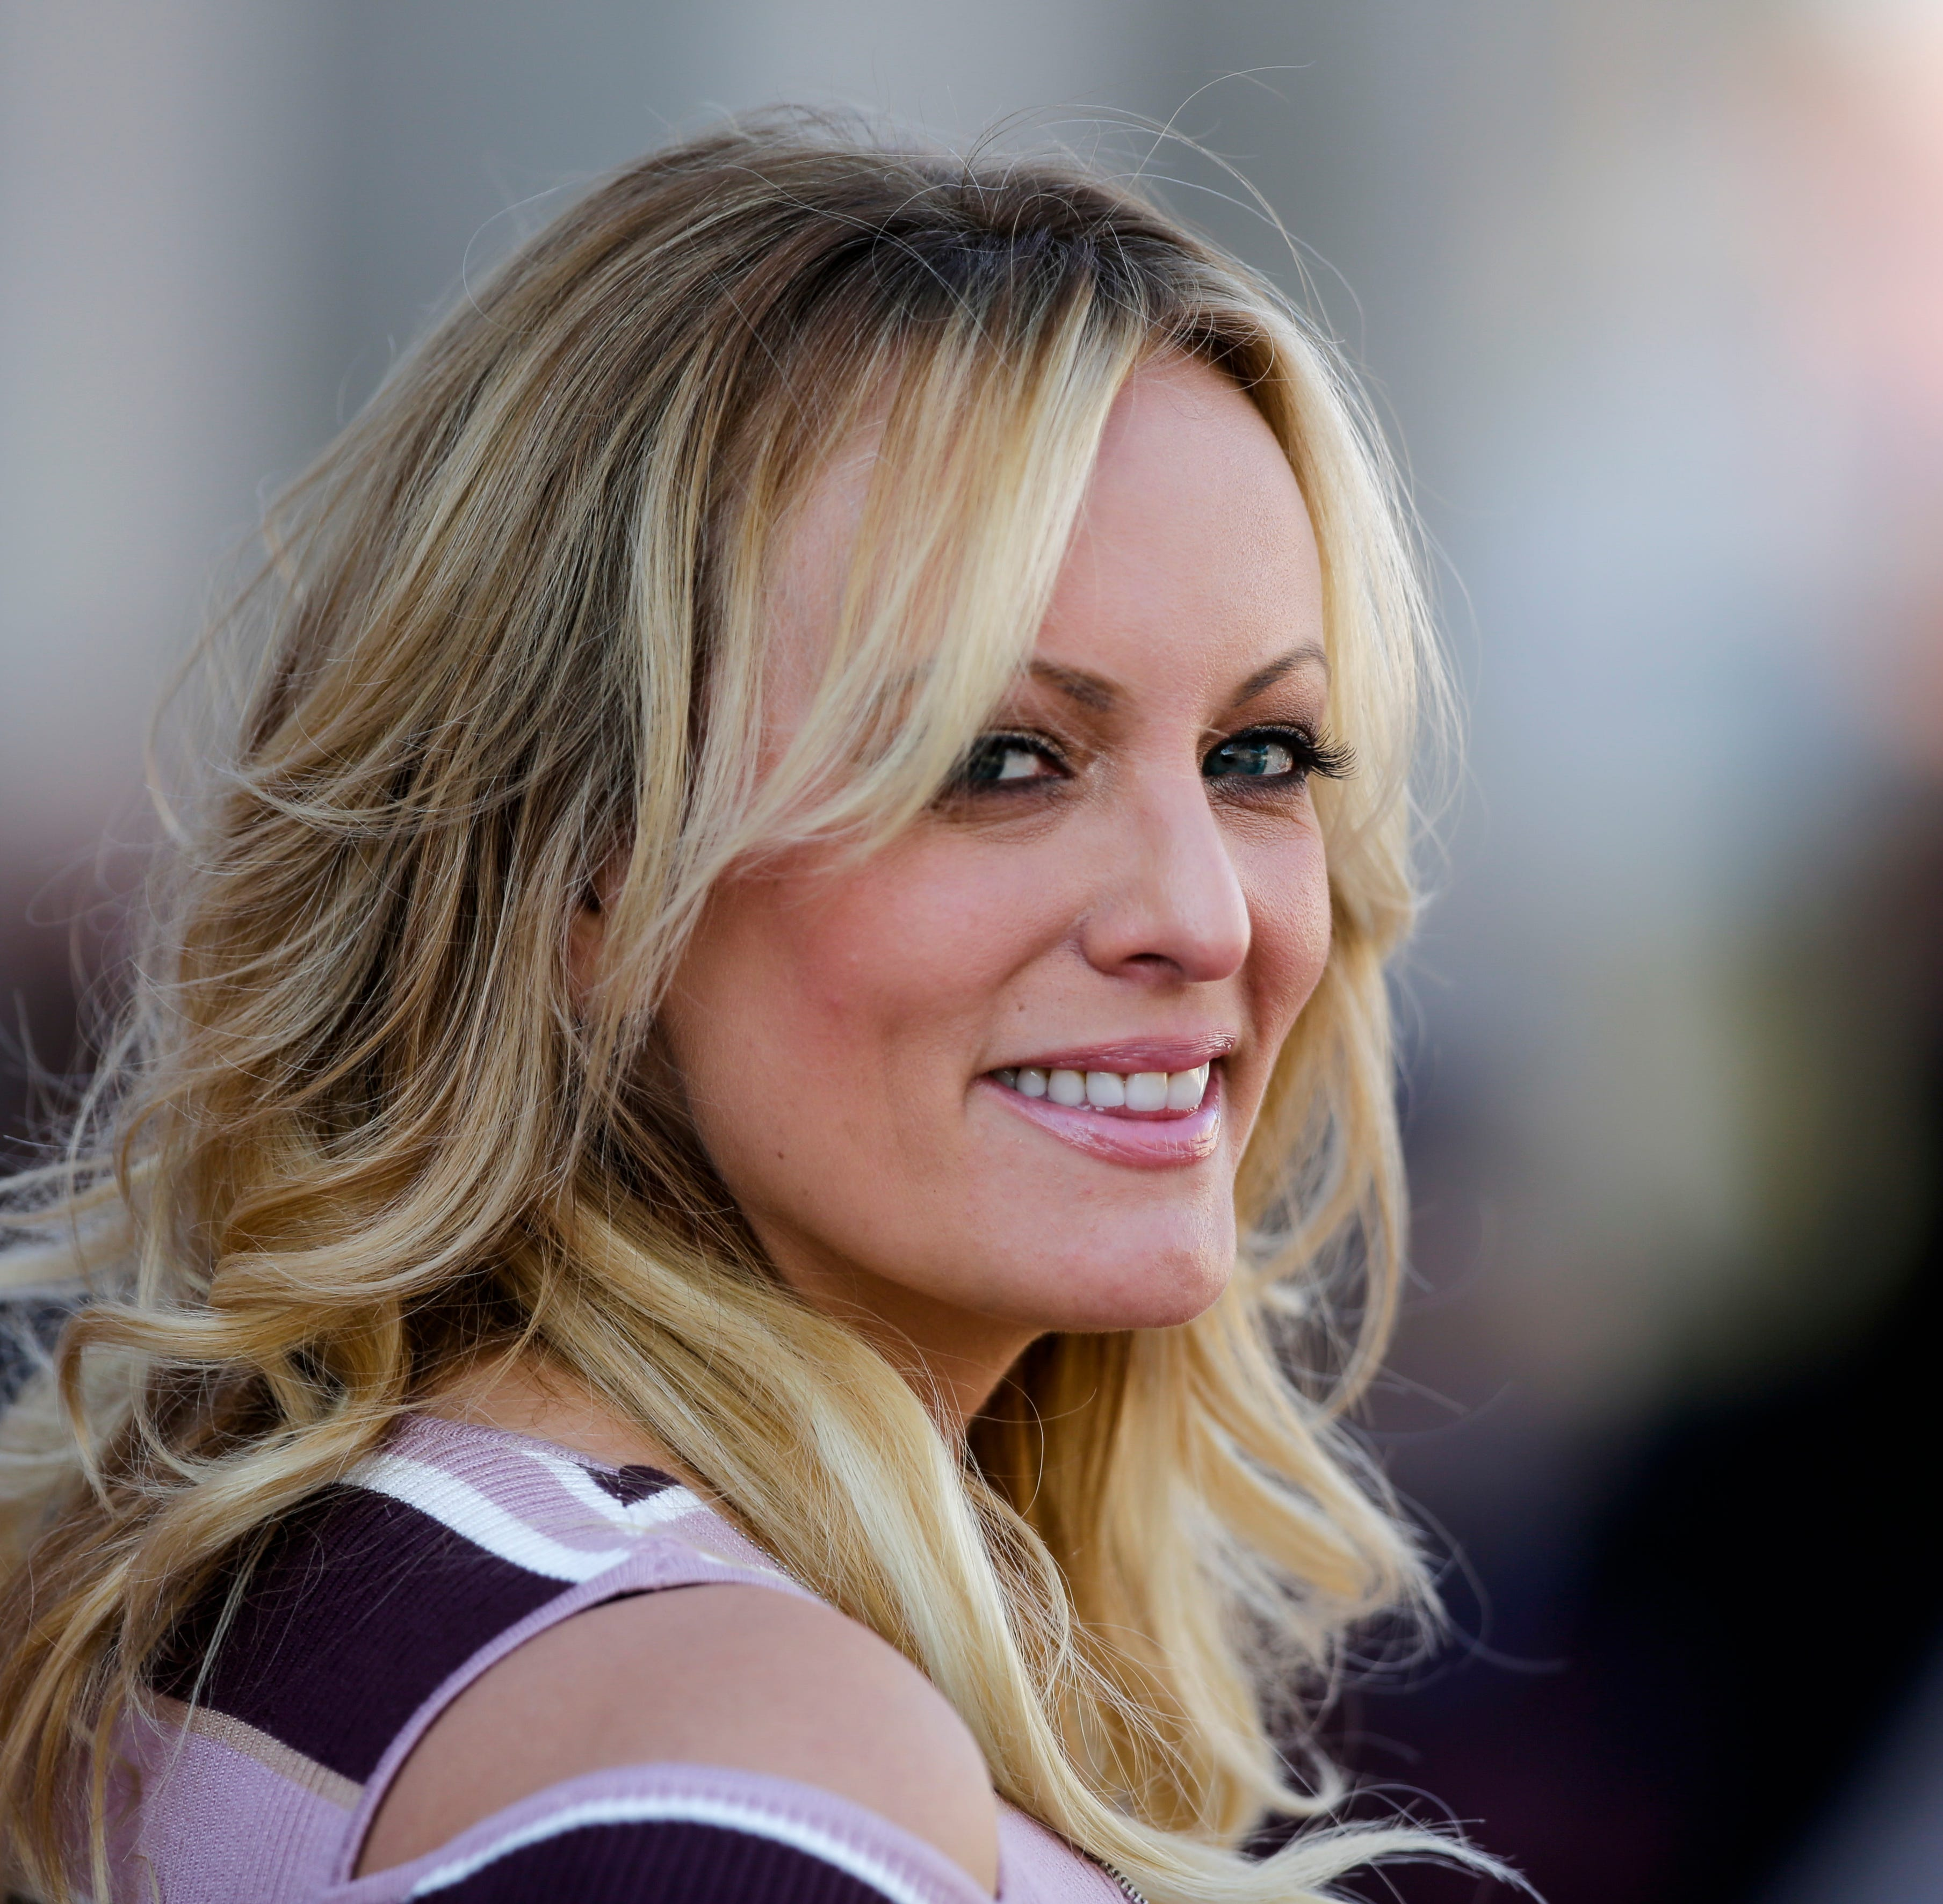 Stormy Daniels calls out 'disgusting punks' from Covington Catholic